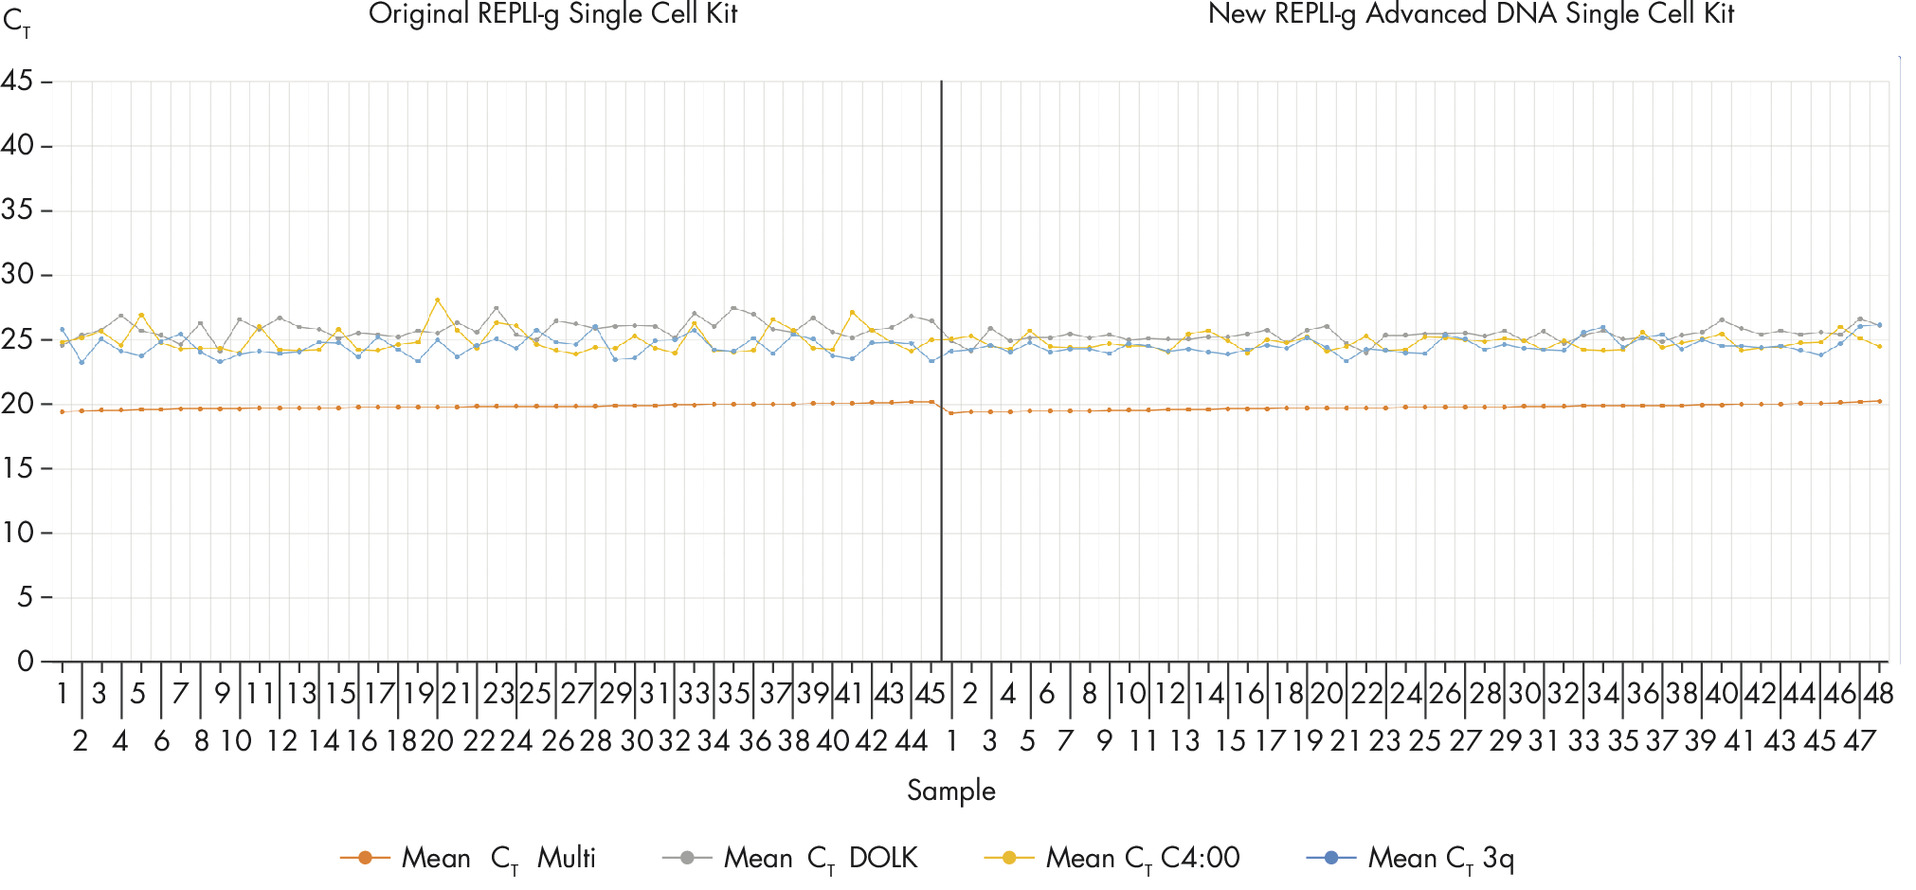 Reproducibility of REPLI-g Advanced DNA Single Cell Kit using single MCF7 cells.